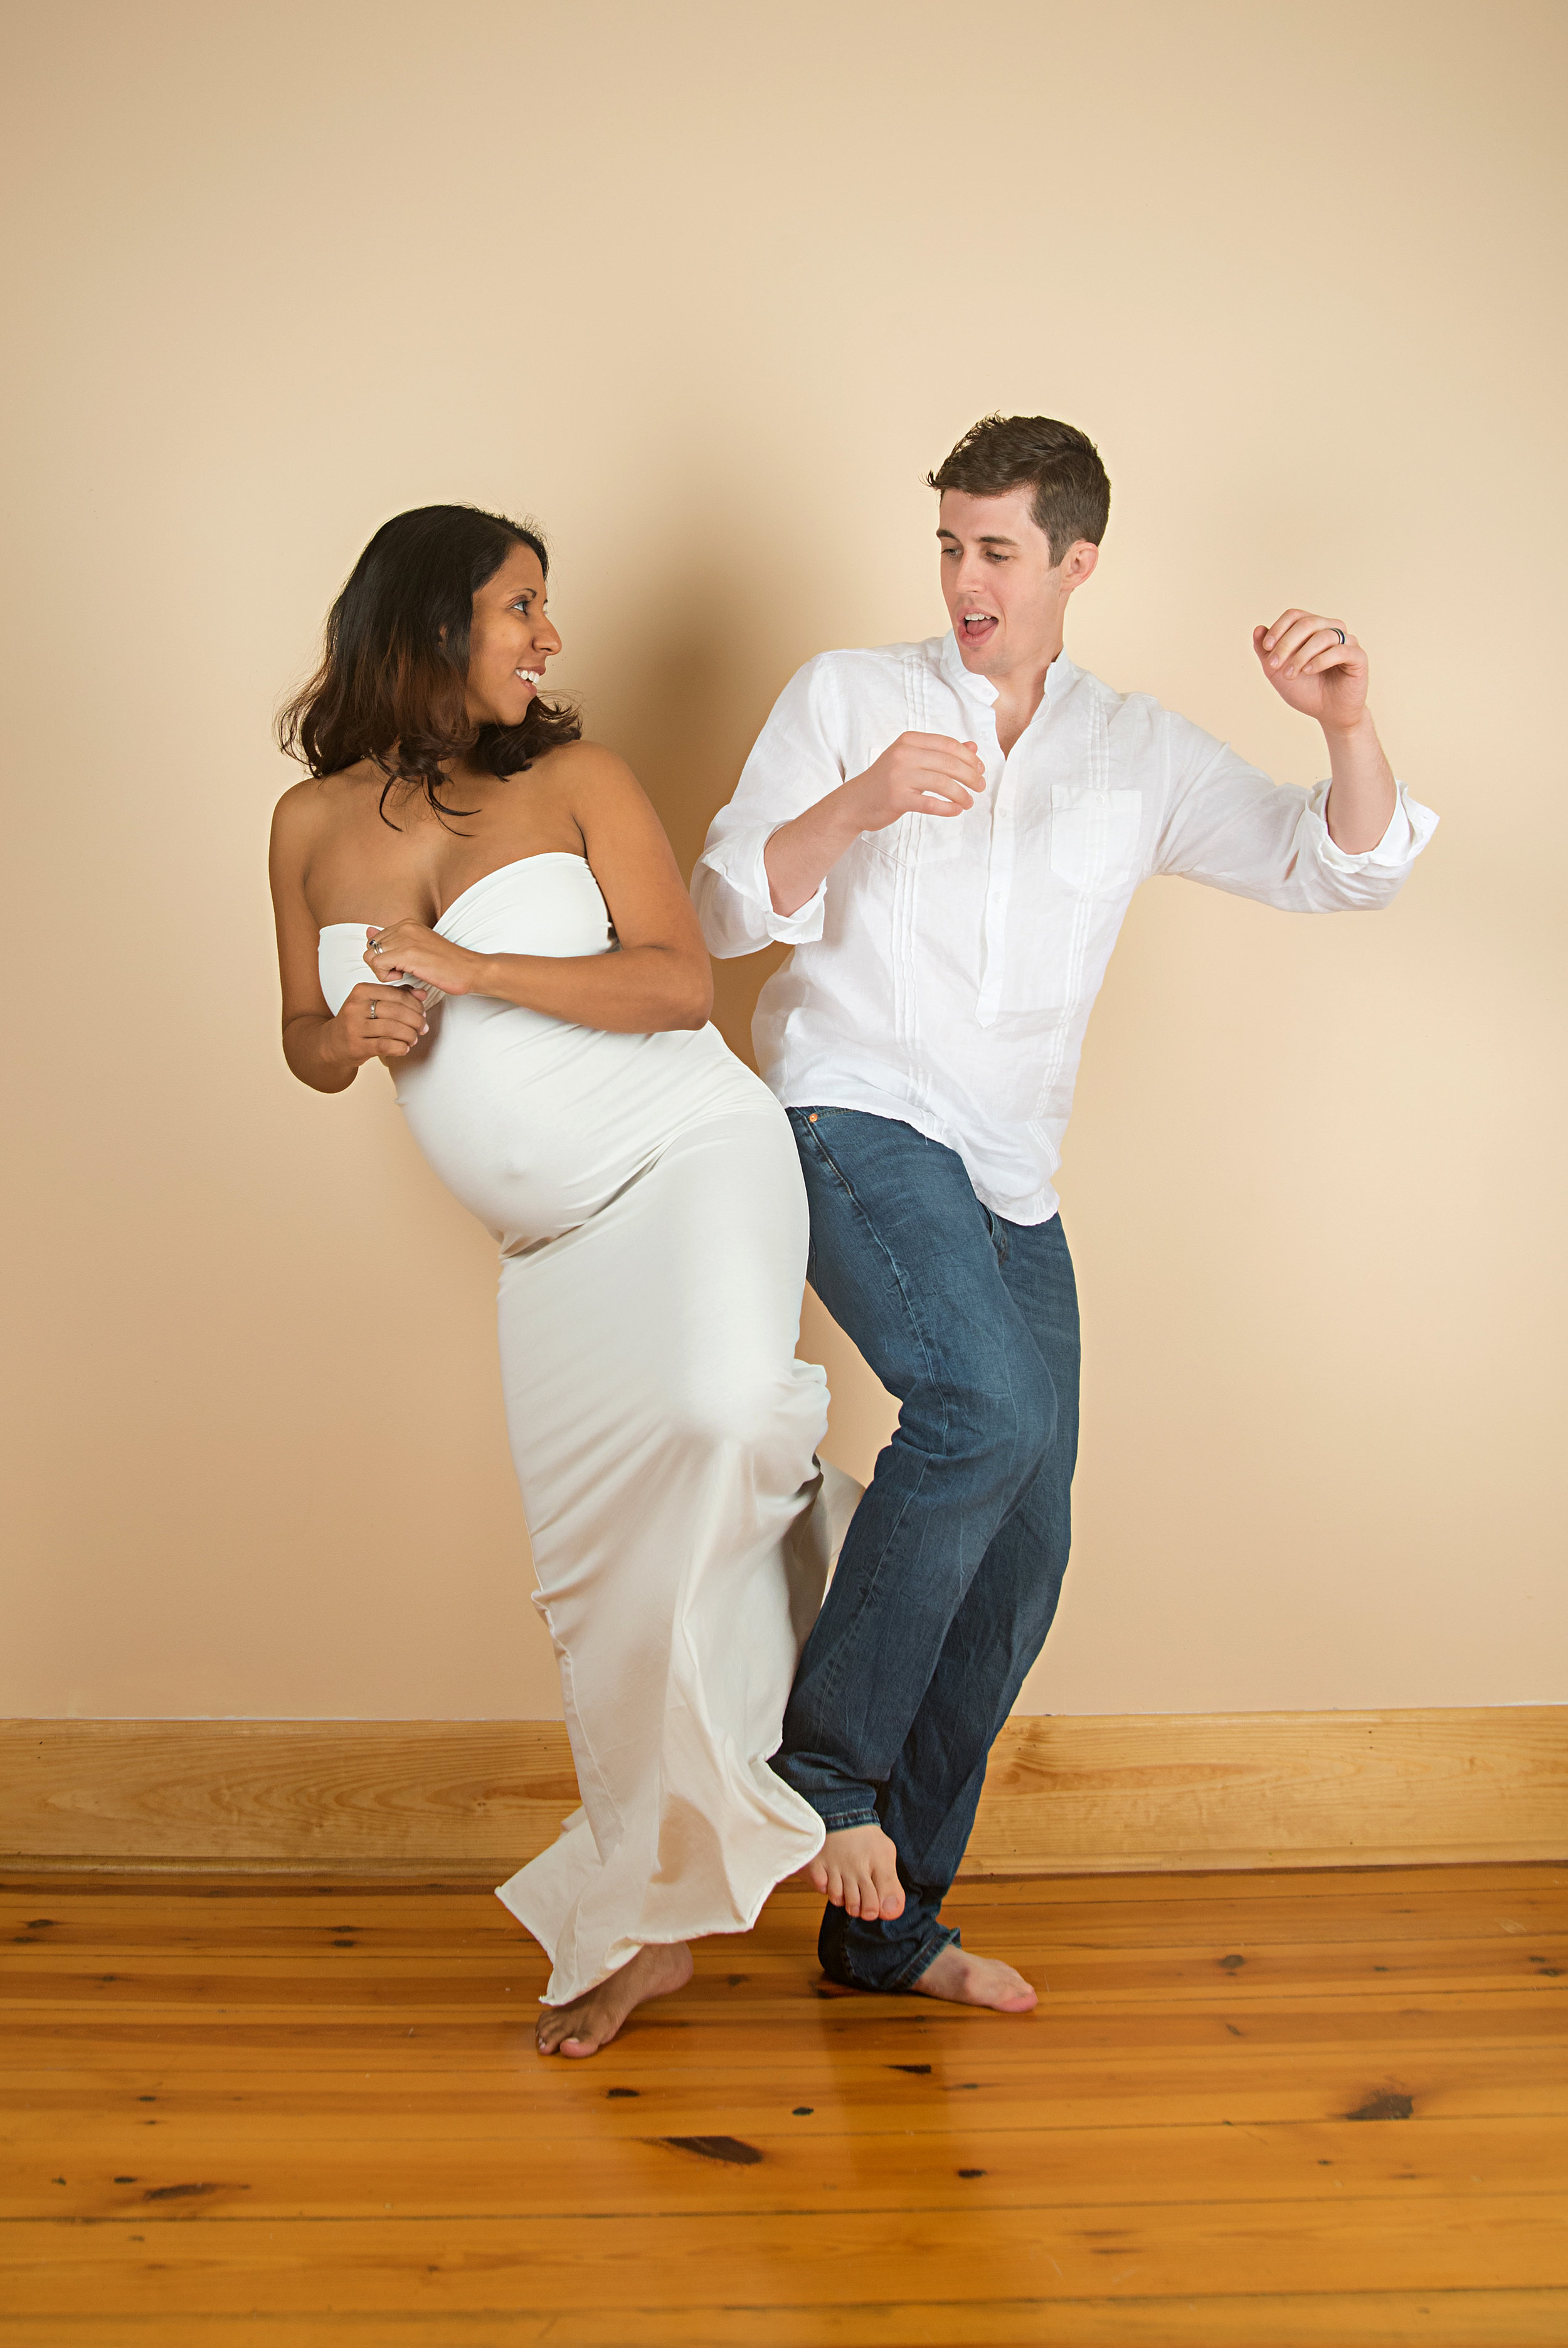 st-louis-maternity-photographer-pregnant-mom-with-dad-dancing-doing-hip-bump.jpg